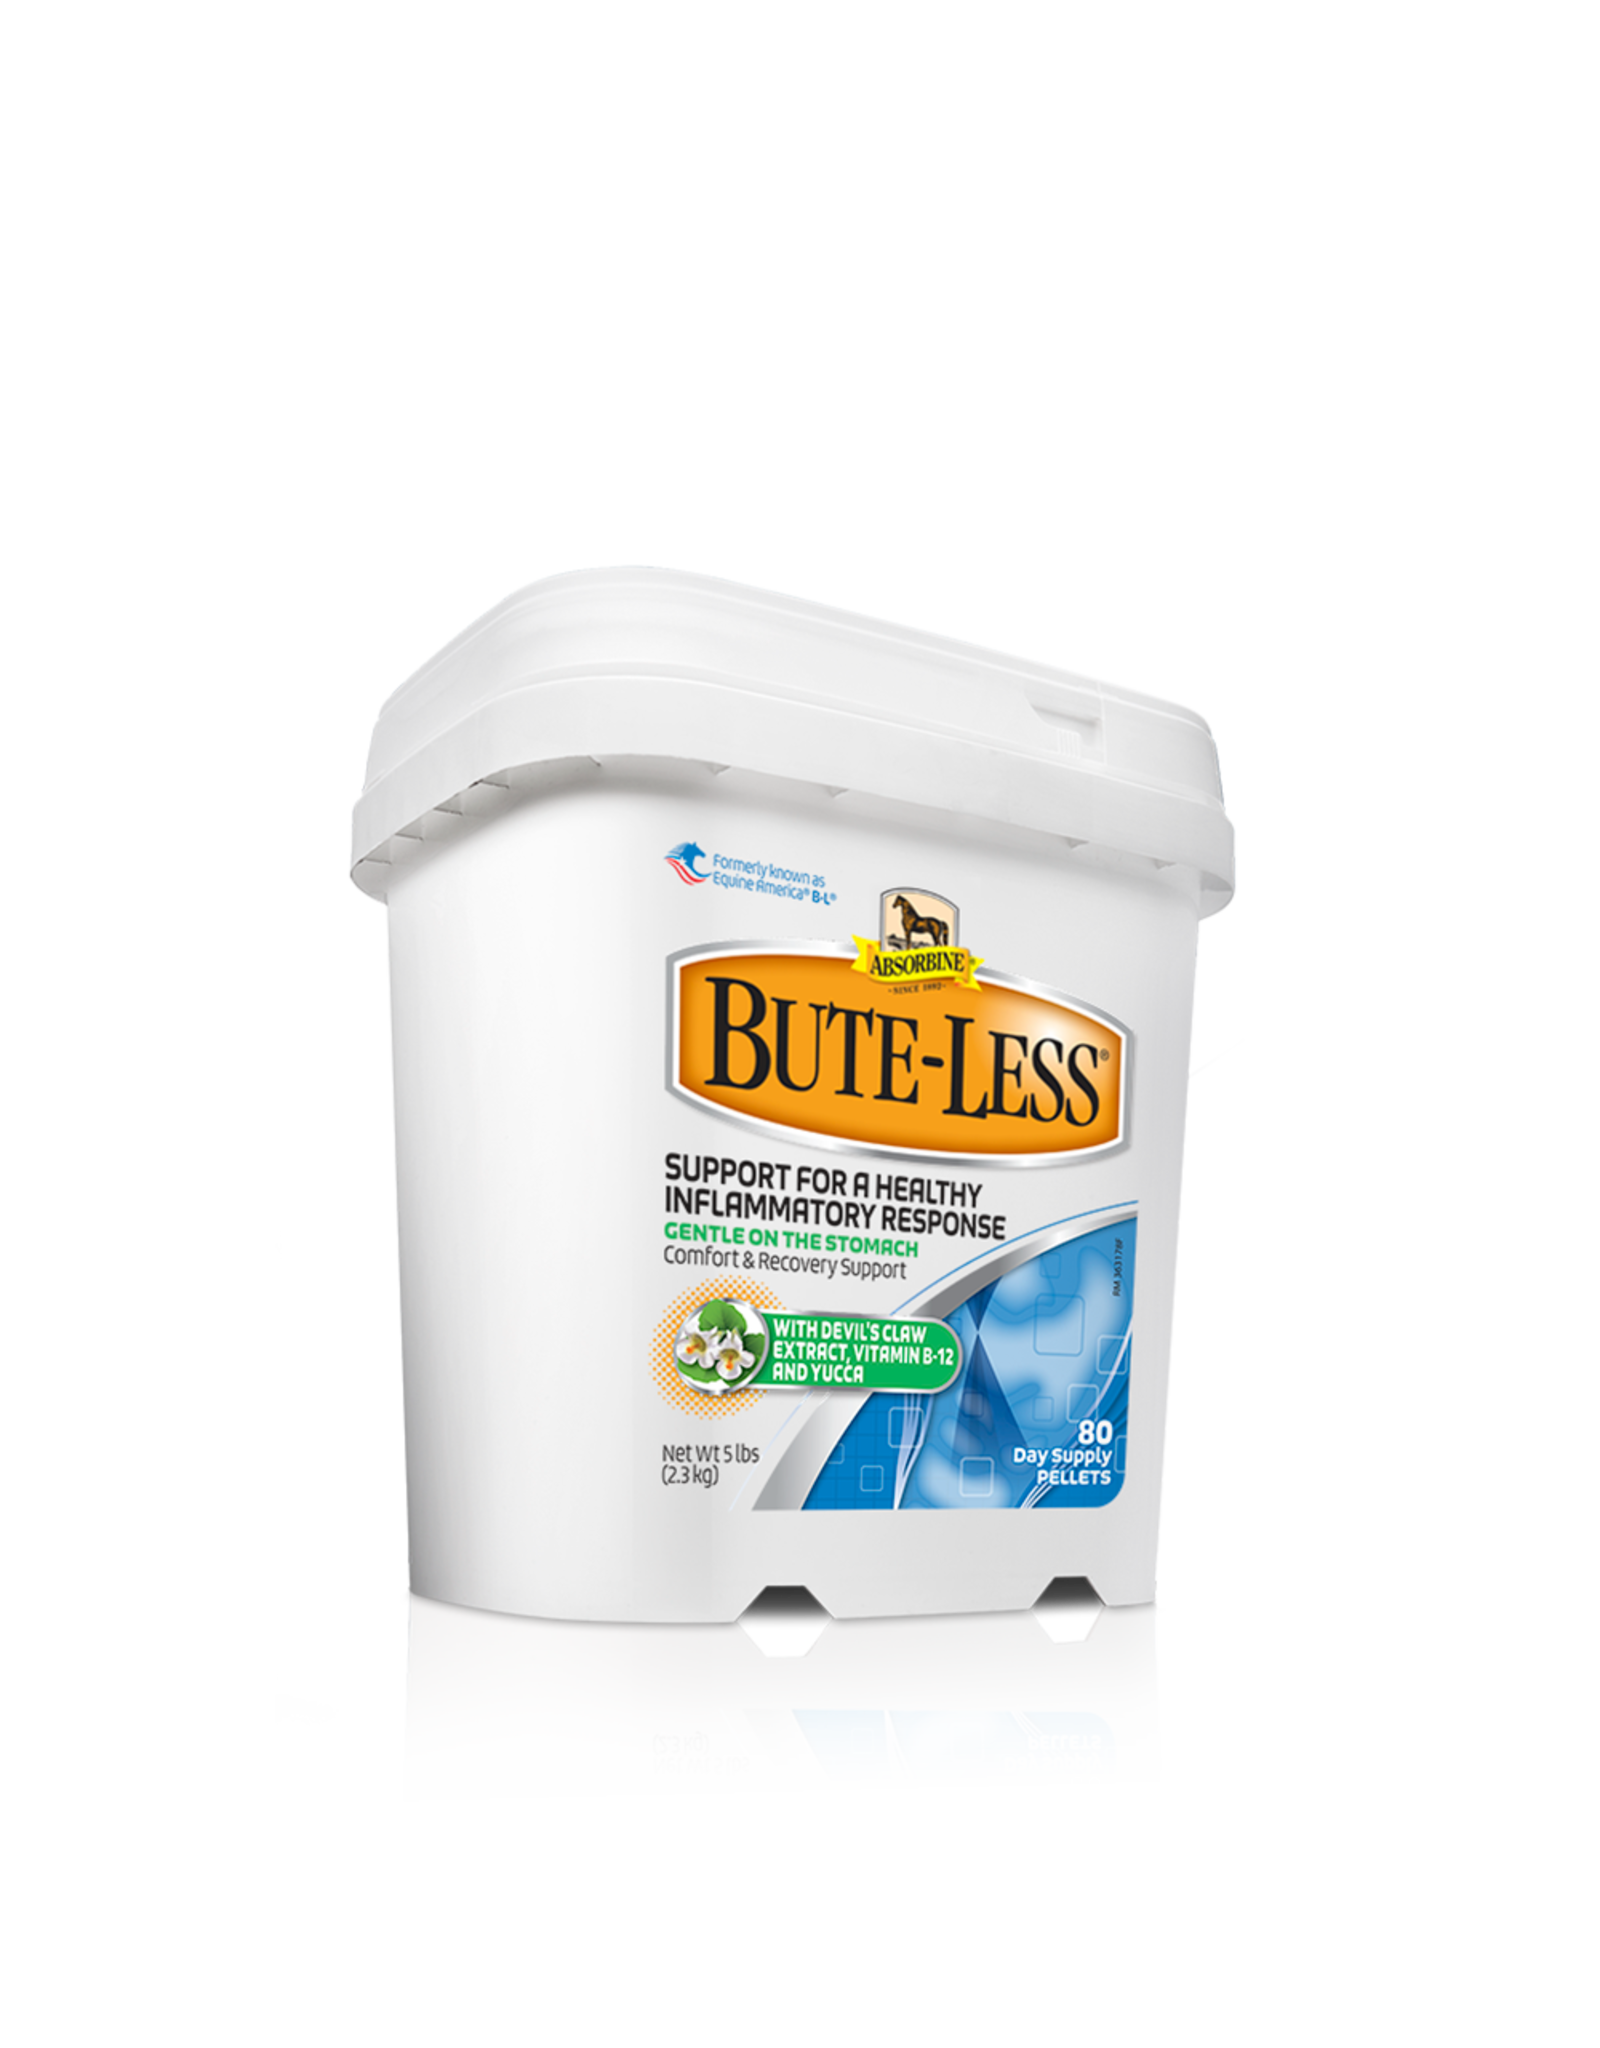 Bute-Less Comfort & Recovery Support Supplement